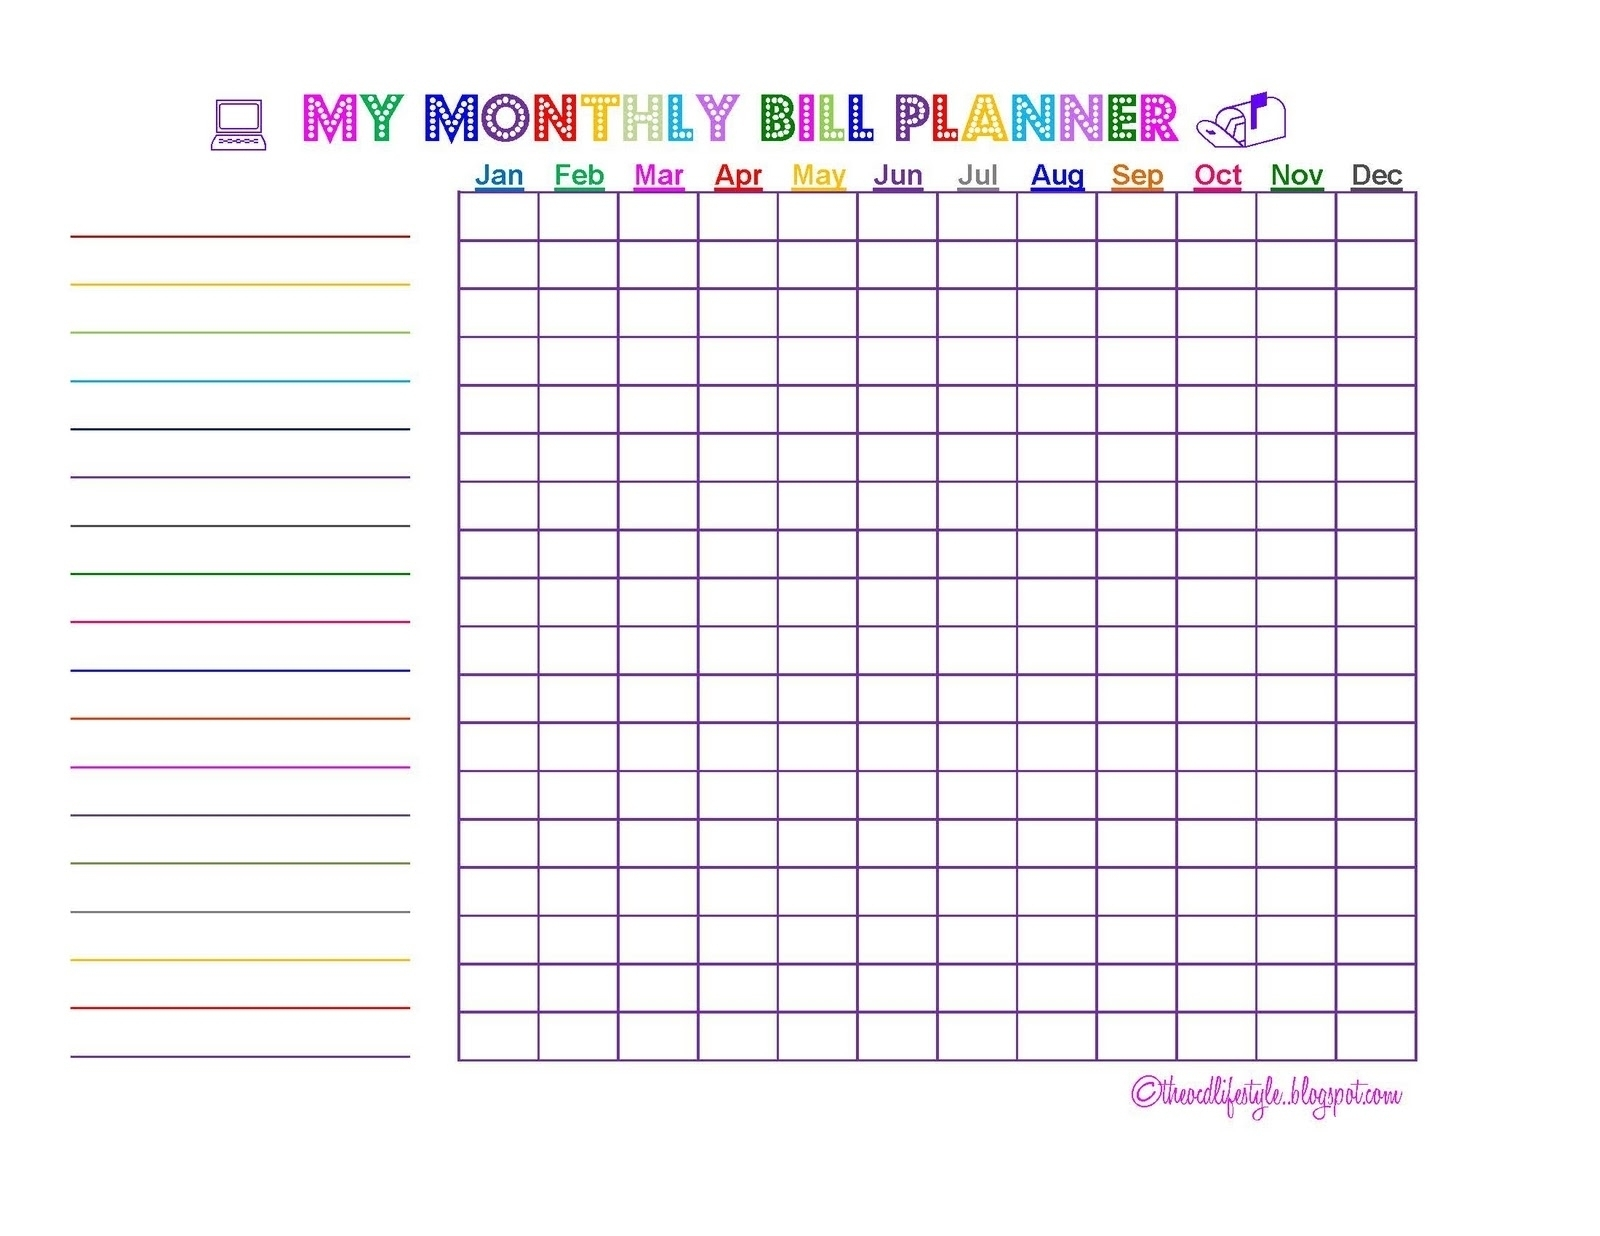 Free Printable Monthly Bill Chart | Template Calendar Printable throughout Free Printable Monthly Bill Chart